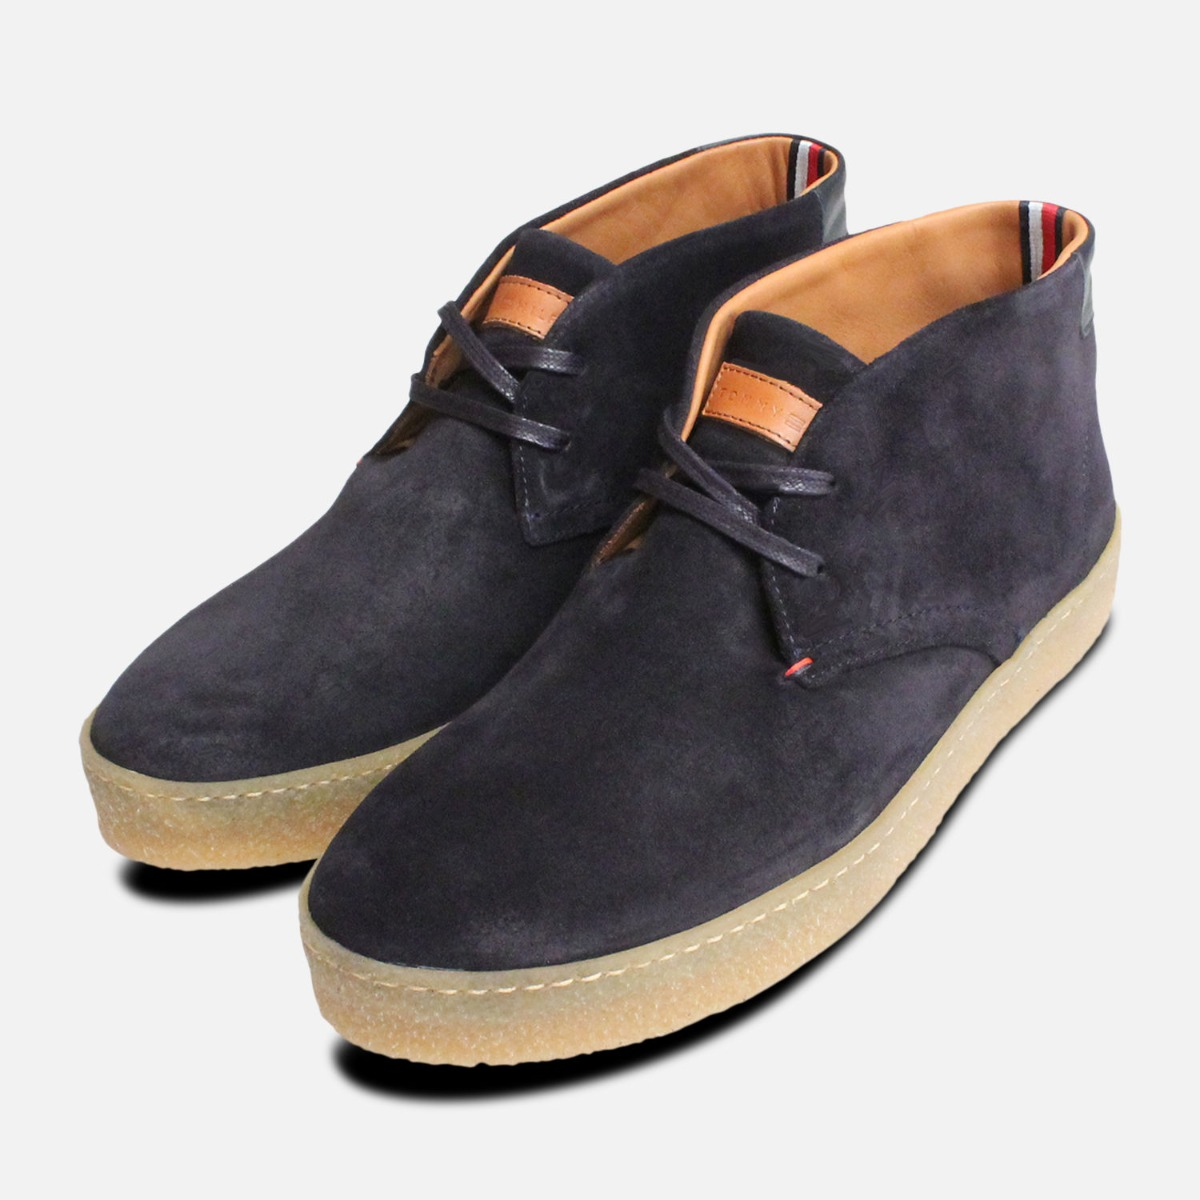 b85cd43ff0c Details about Navy Blue Suede Tommy Hilfiger Cupsole Crepe Boots